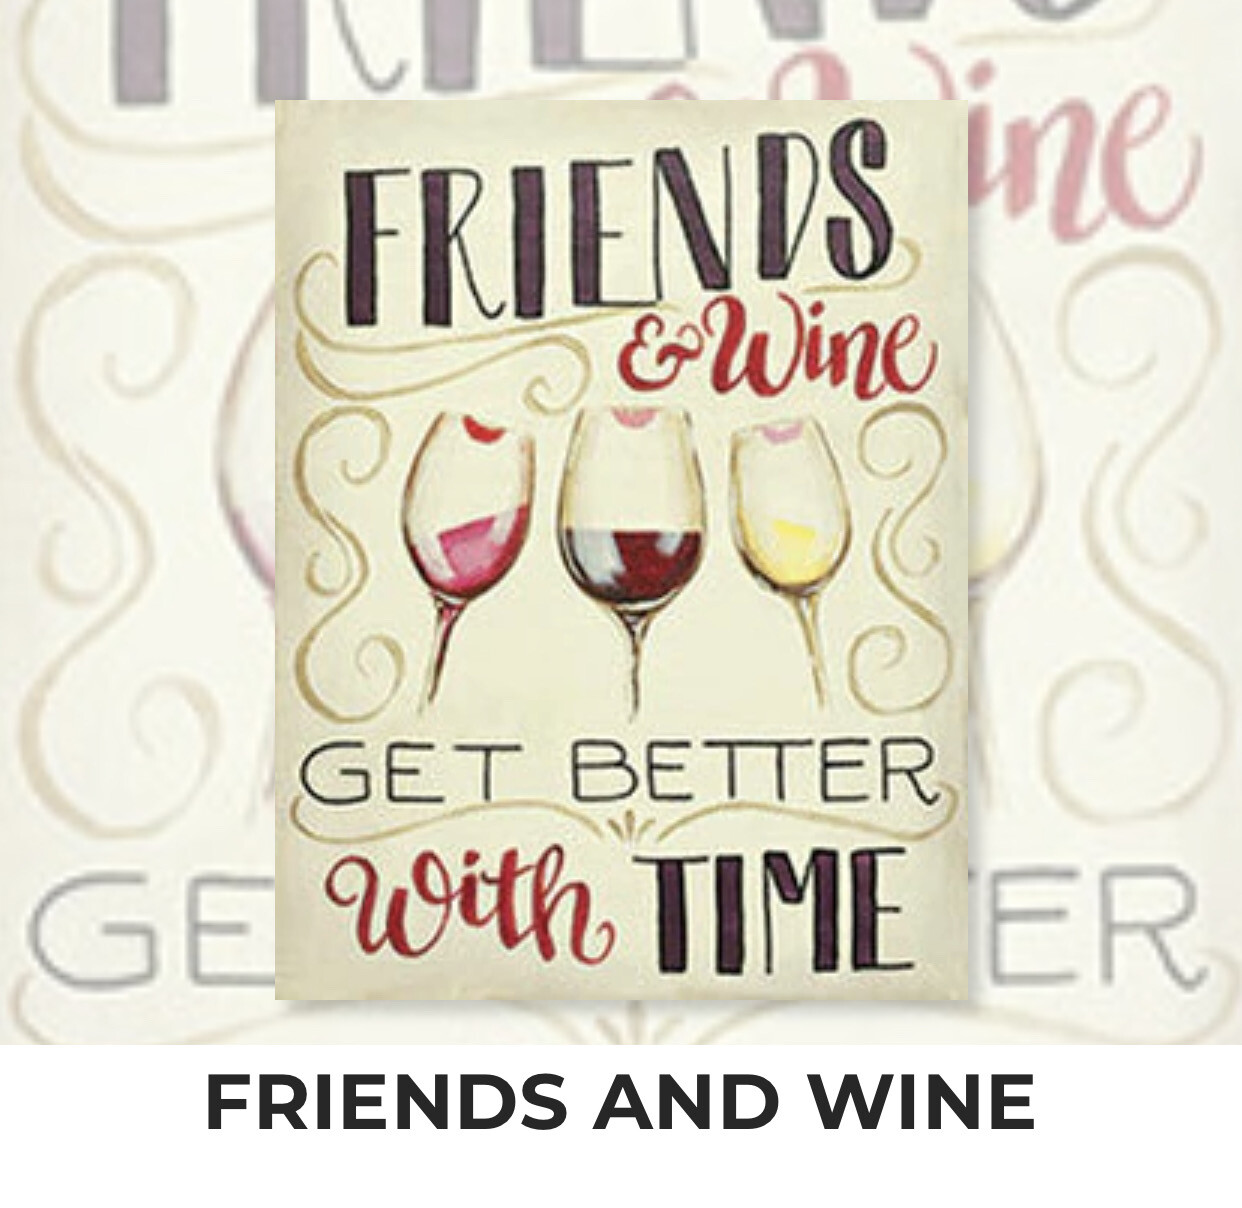 Friends And Wine ADULT Acrylic Paint On Canvas DIY Art Kit - 3 Week Special Order